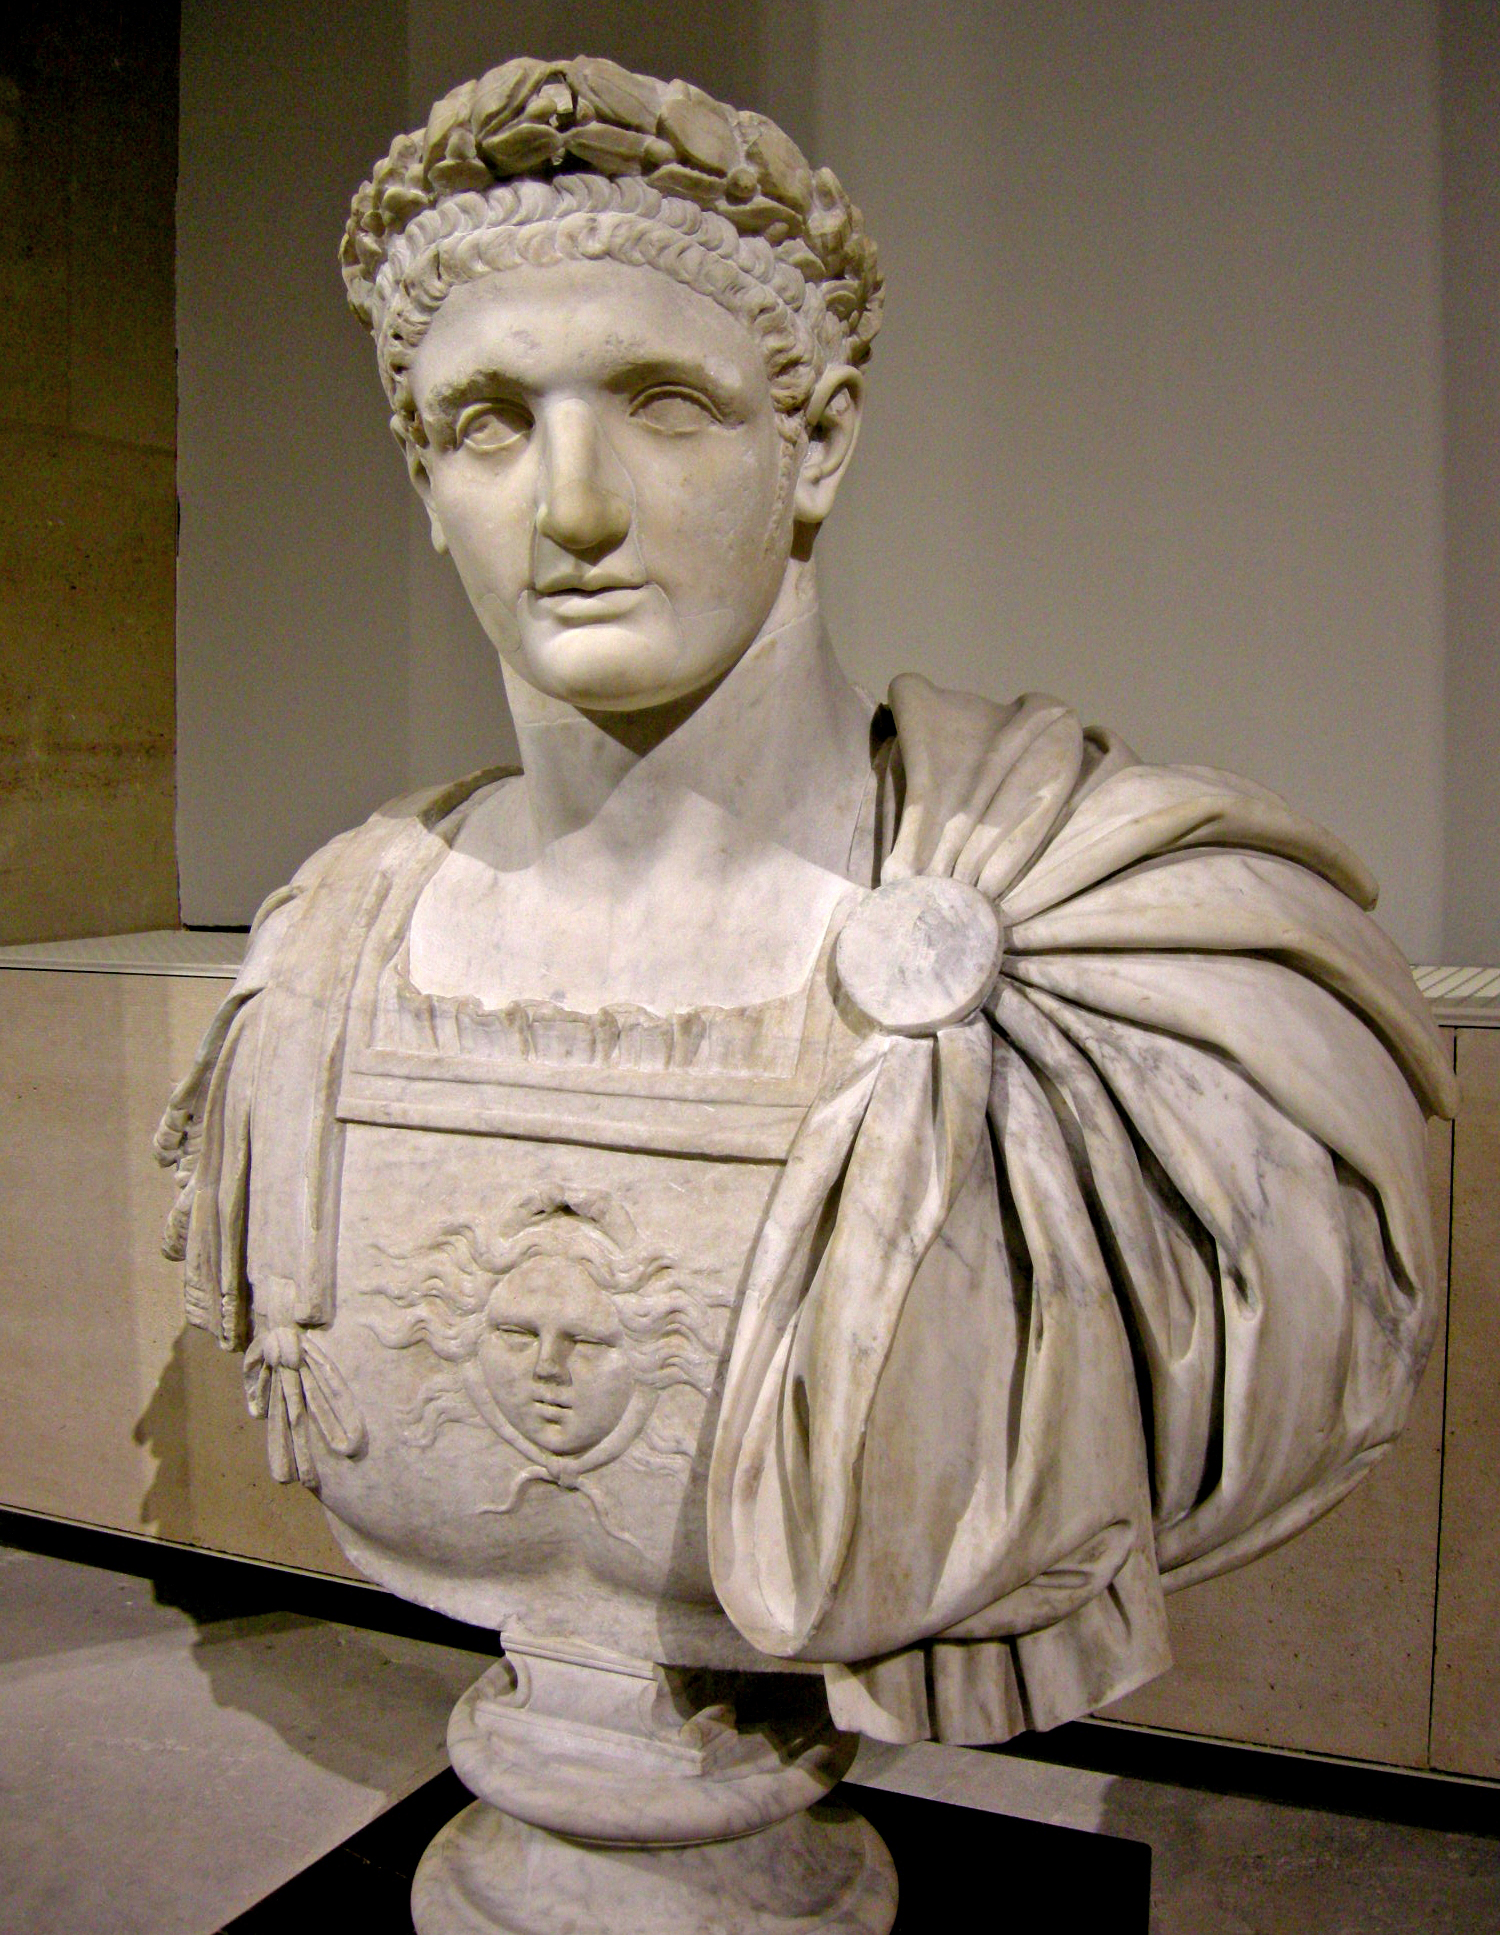 Bust of Domitian as Emperor (head from antiquity, body from the 18th century), but depicted as a youth, in the Louvre, Paris. Notice his vertically layered Neronian style haircut.